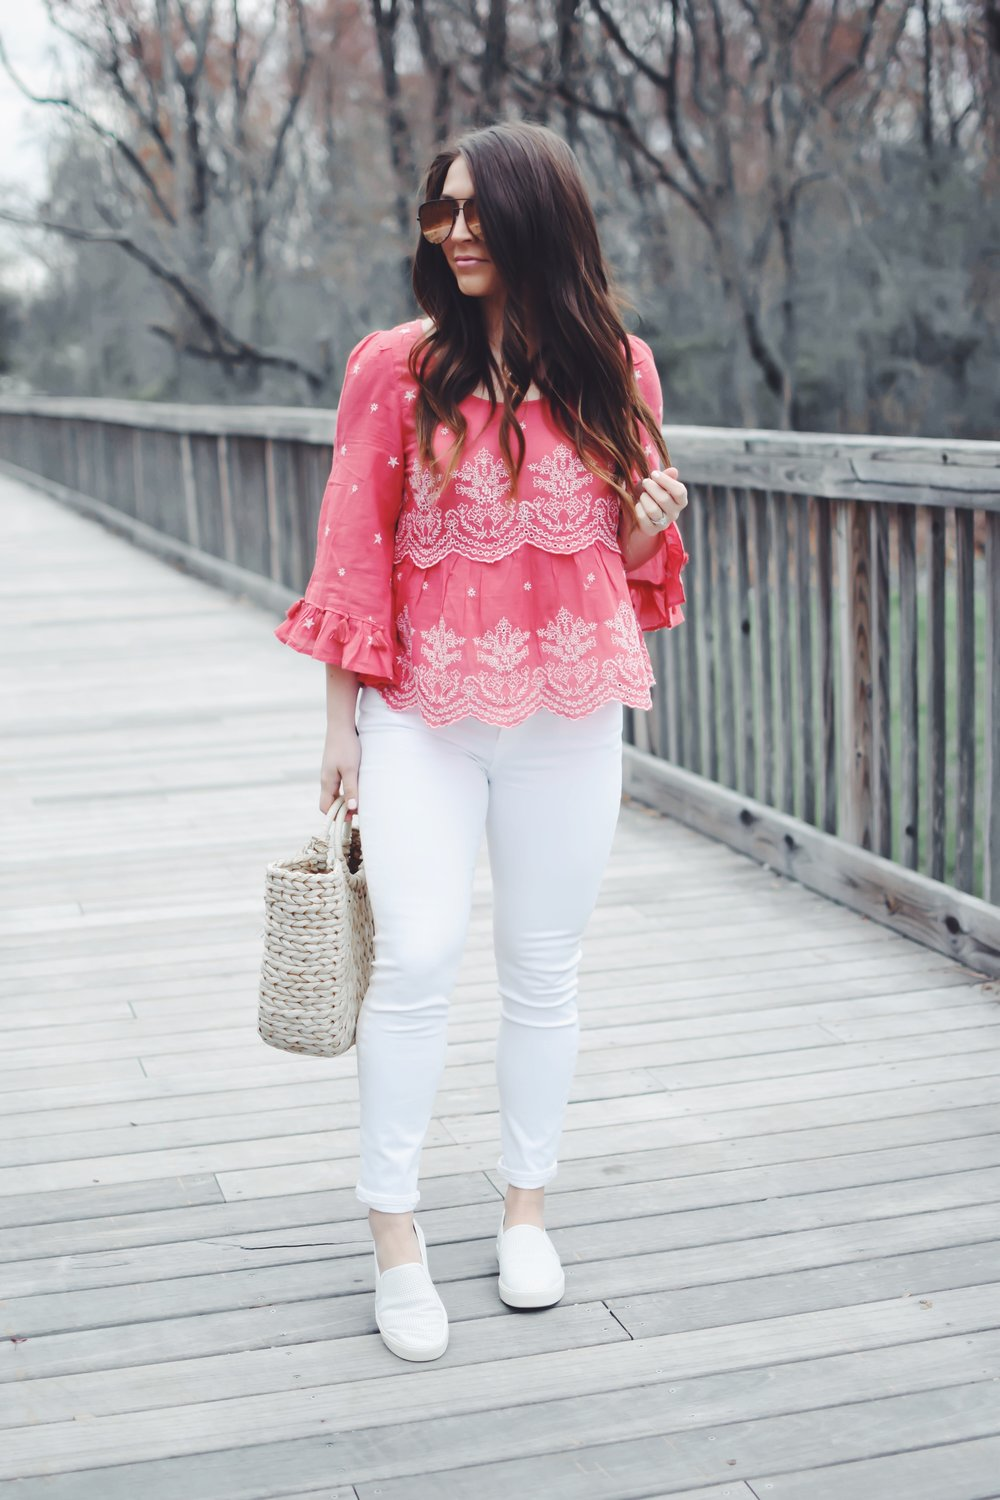 Embroidered Top + White Denim | Pine Barren Beauty | spring fashion, spring outfit idea, American eagle boho top, citizens of humanity white denim, Vince white slip ons